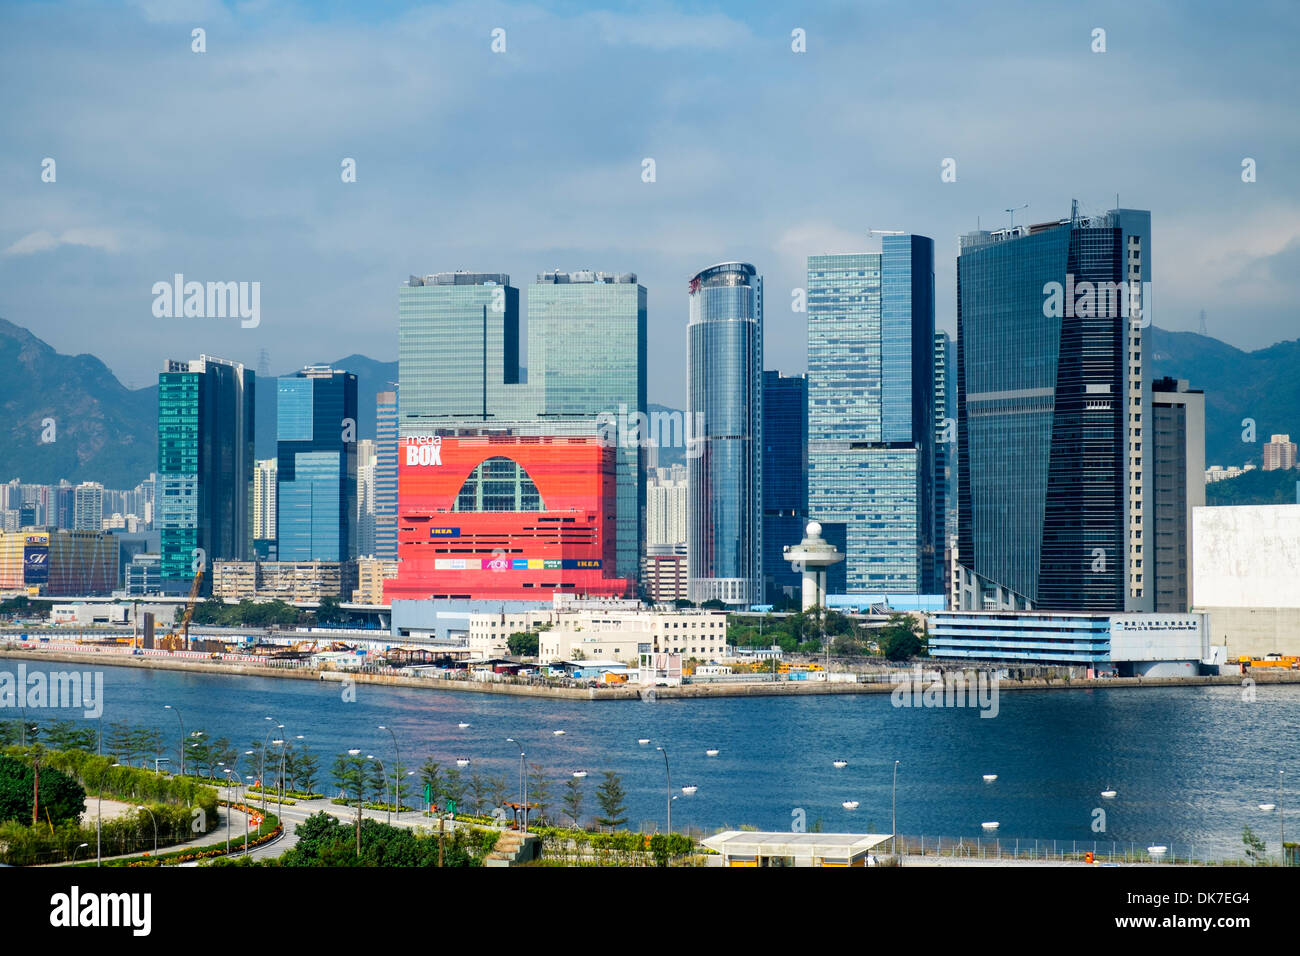 View of dense urban cityscape and high-rise towers in Kowloon Bay Hong Kong - Stock Image